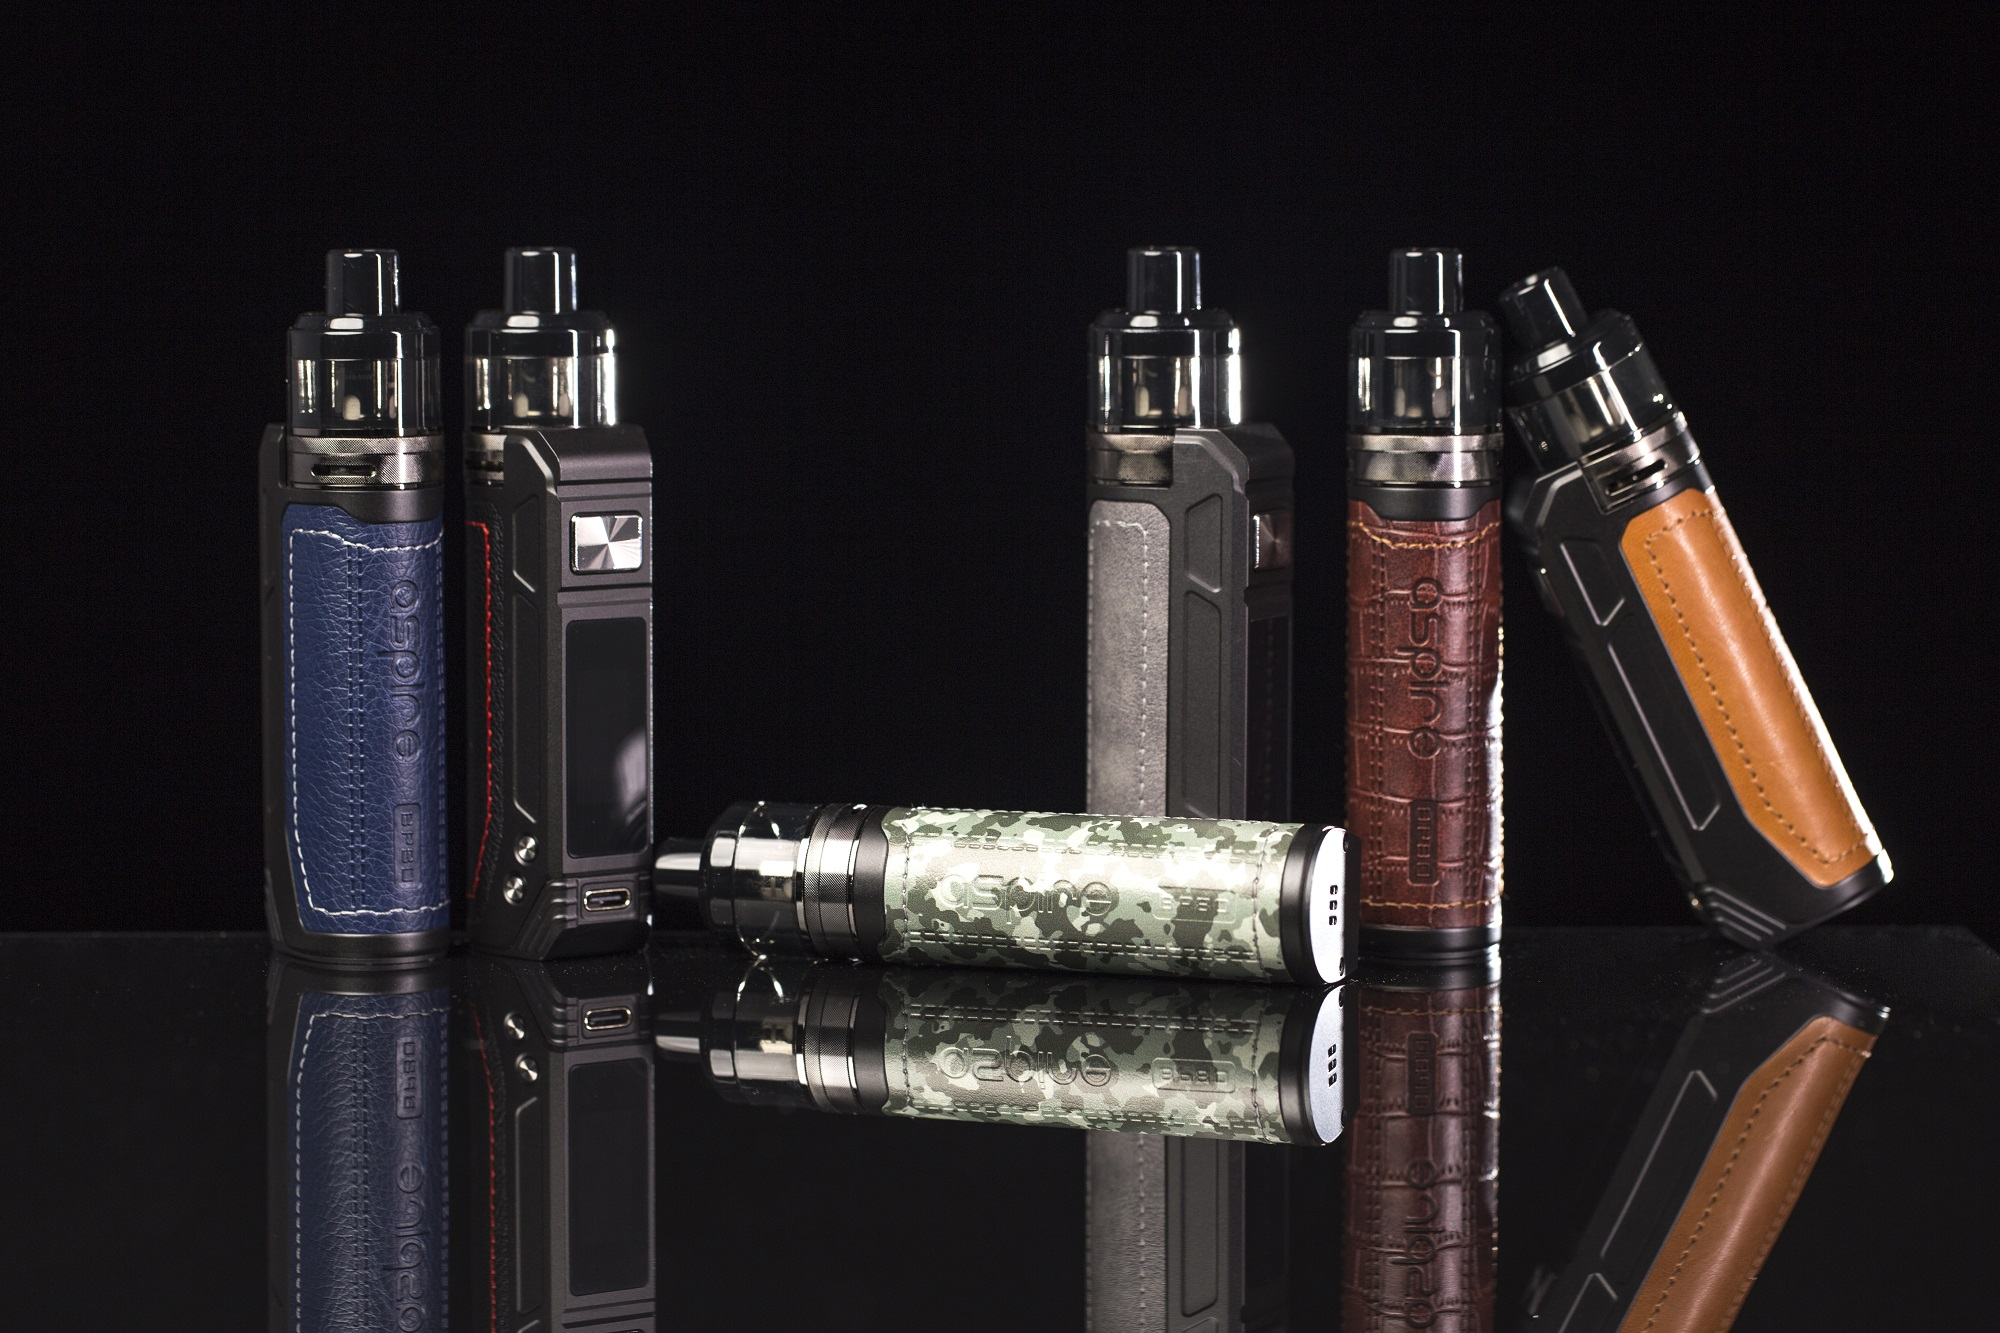 One of Aspire's latest pod mods, the Aspire BP80.